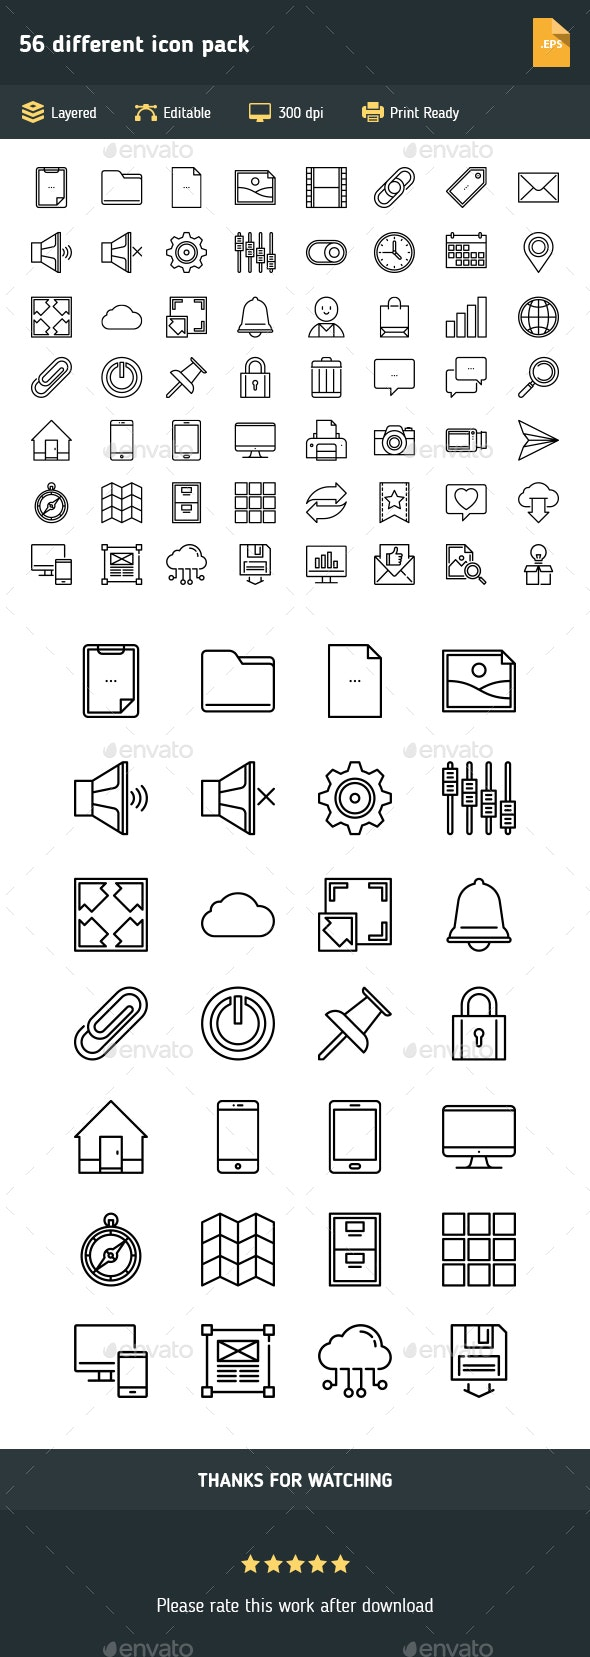 56 different icon pack - Icons